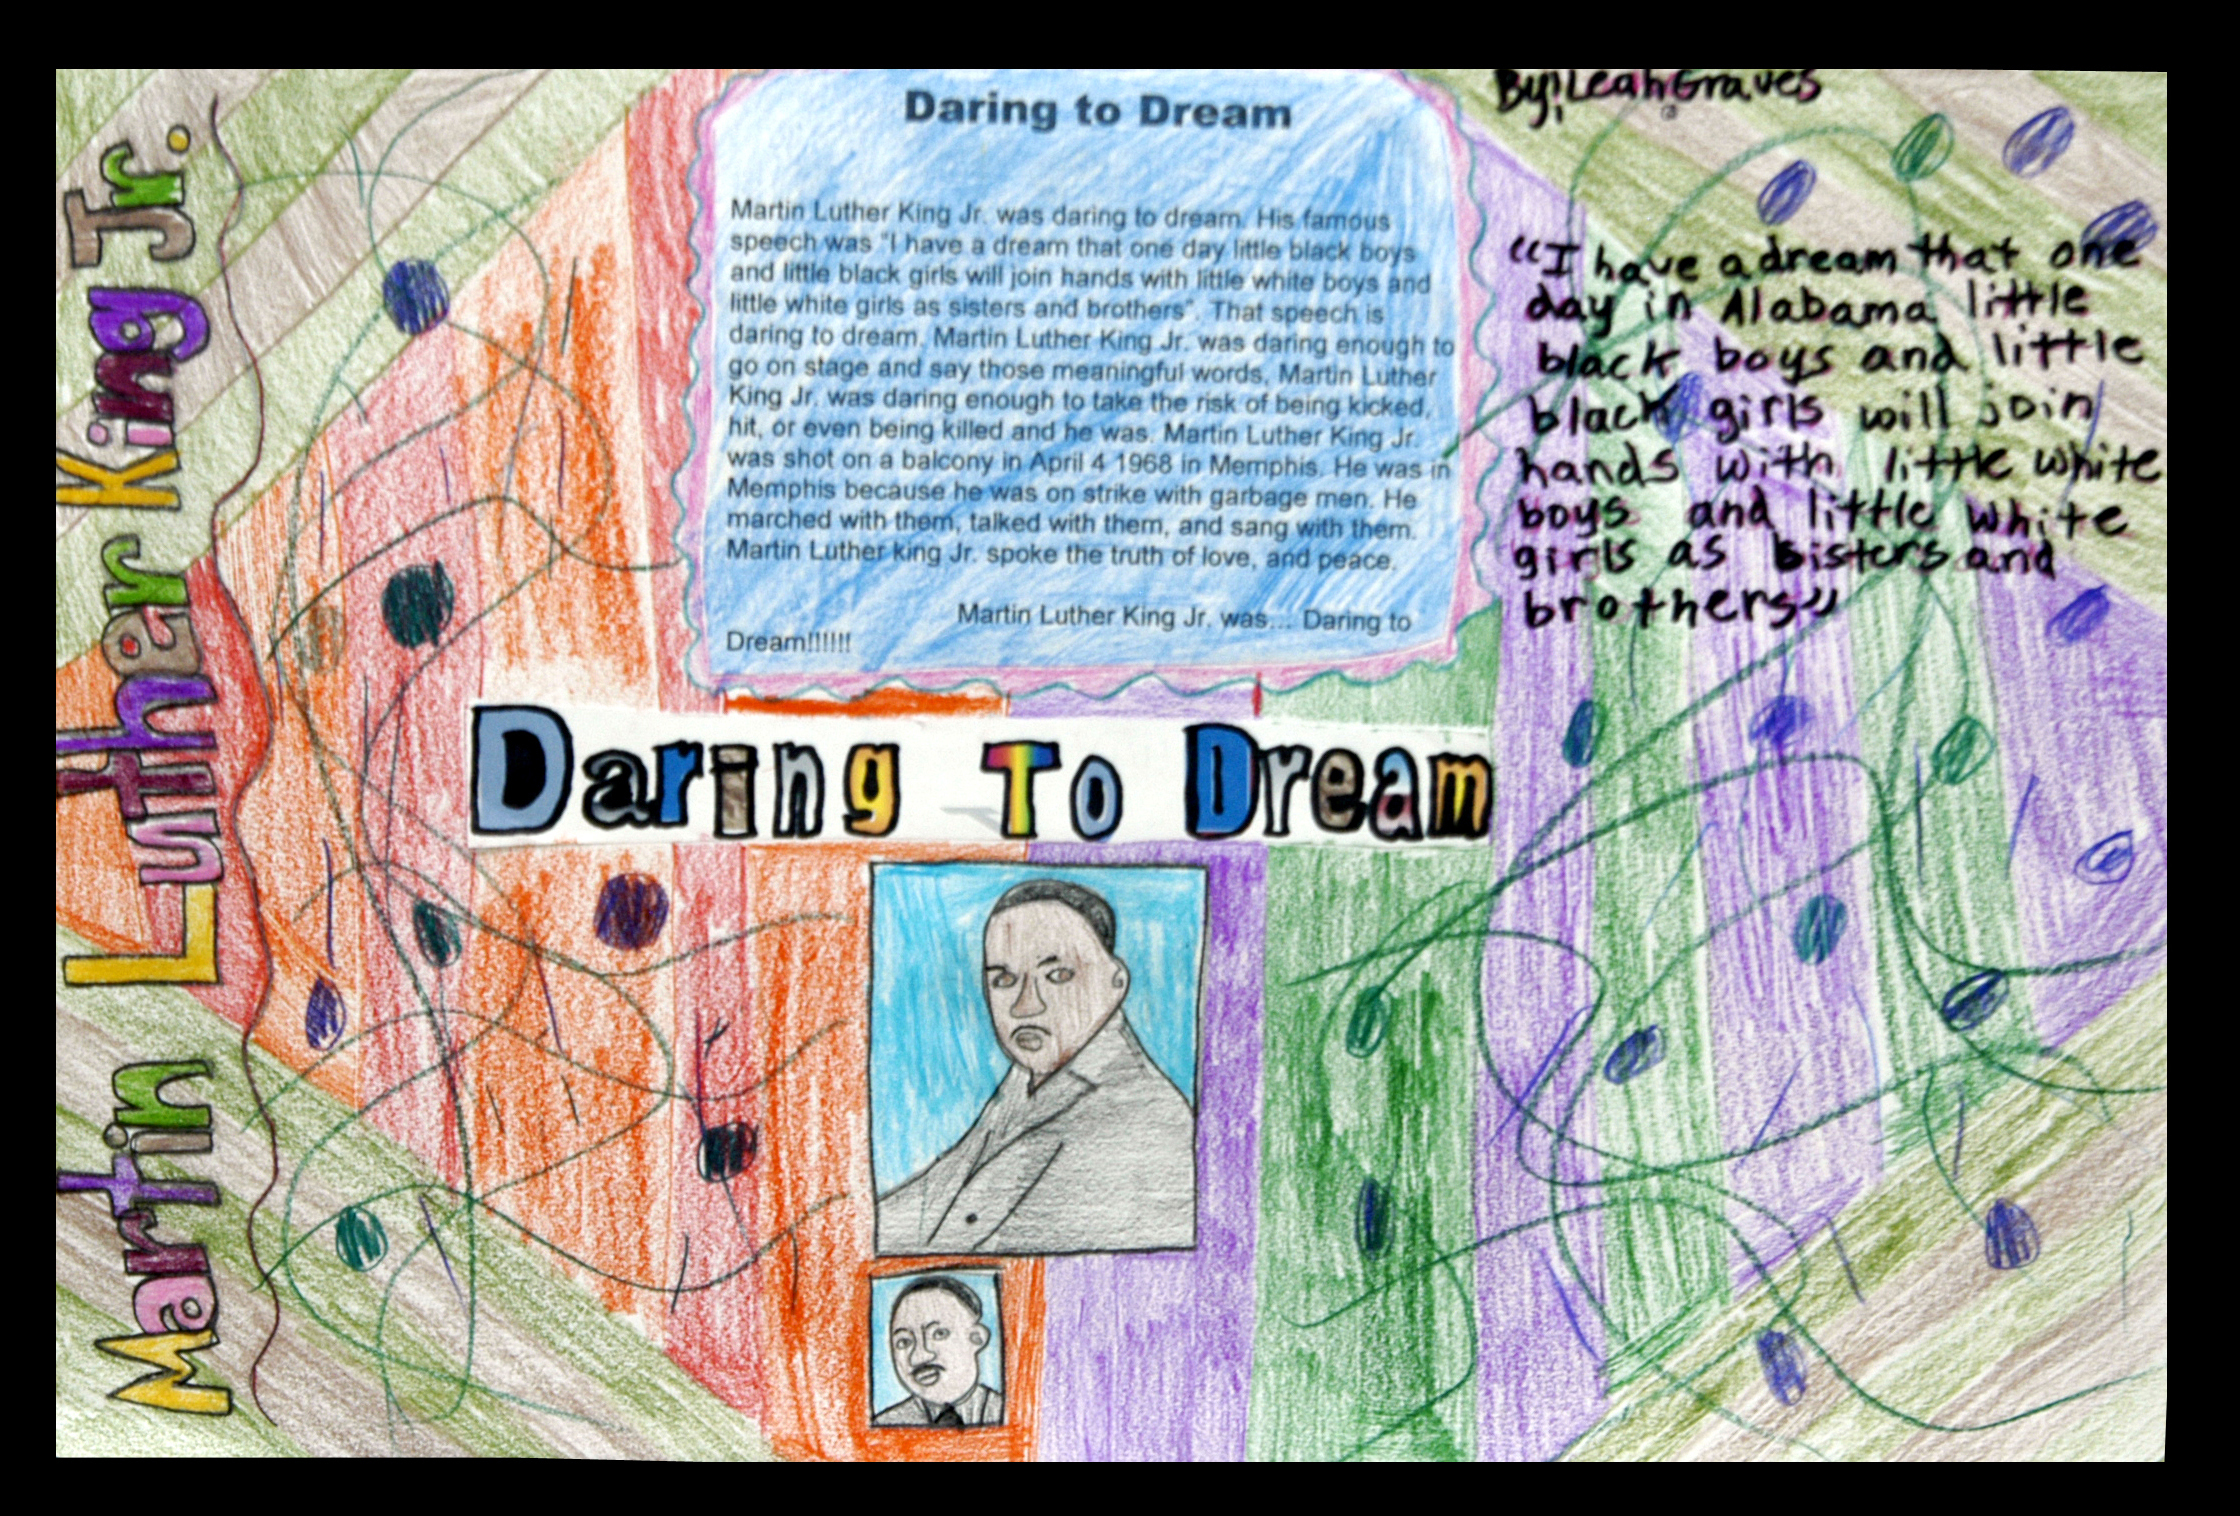 Martin Luther King Jr. contest winning poster